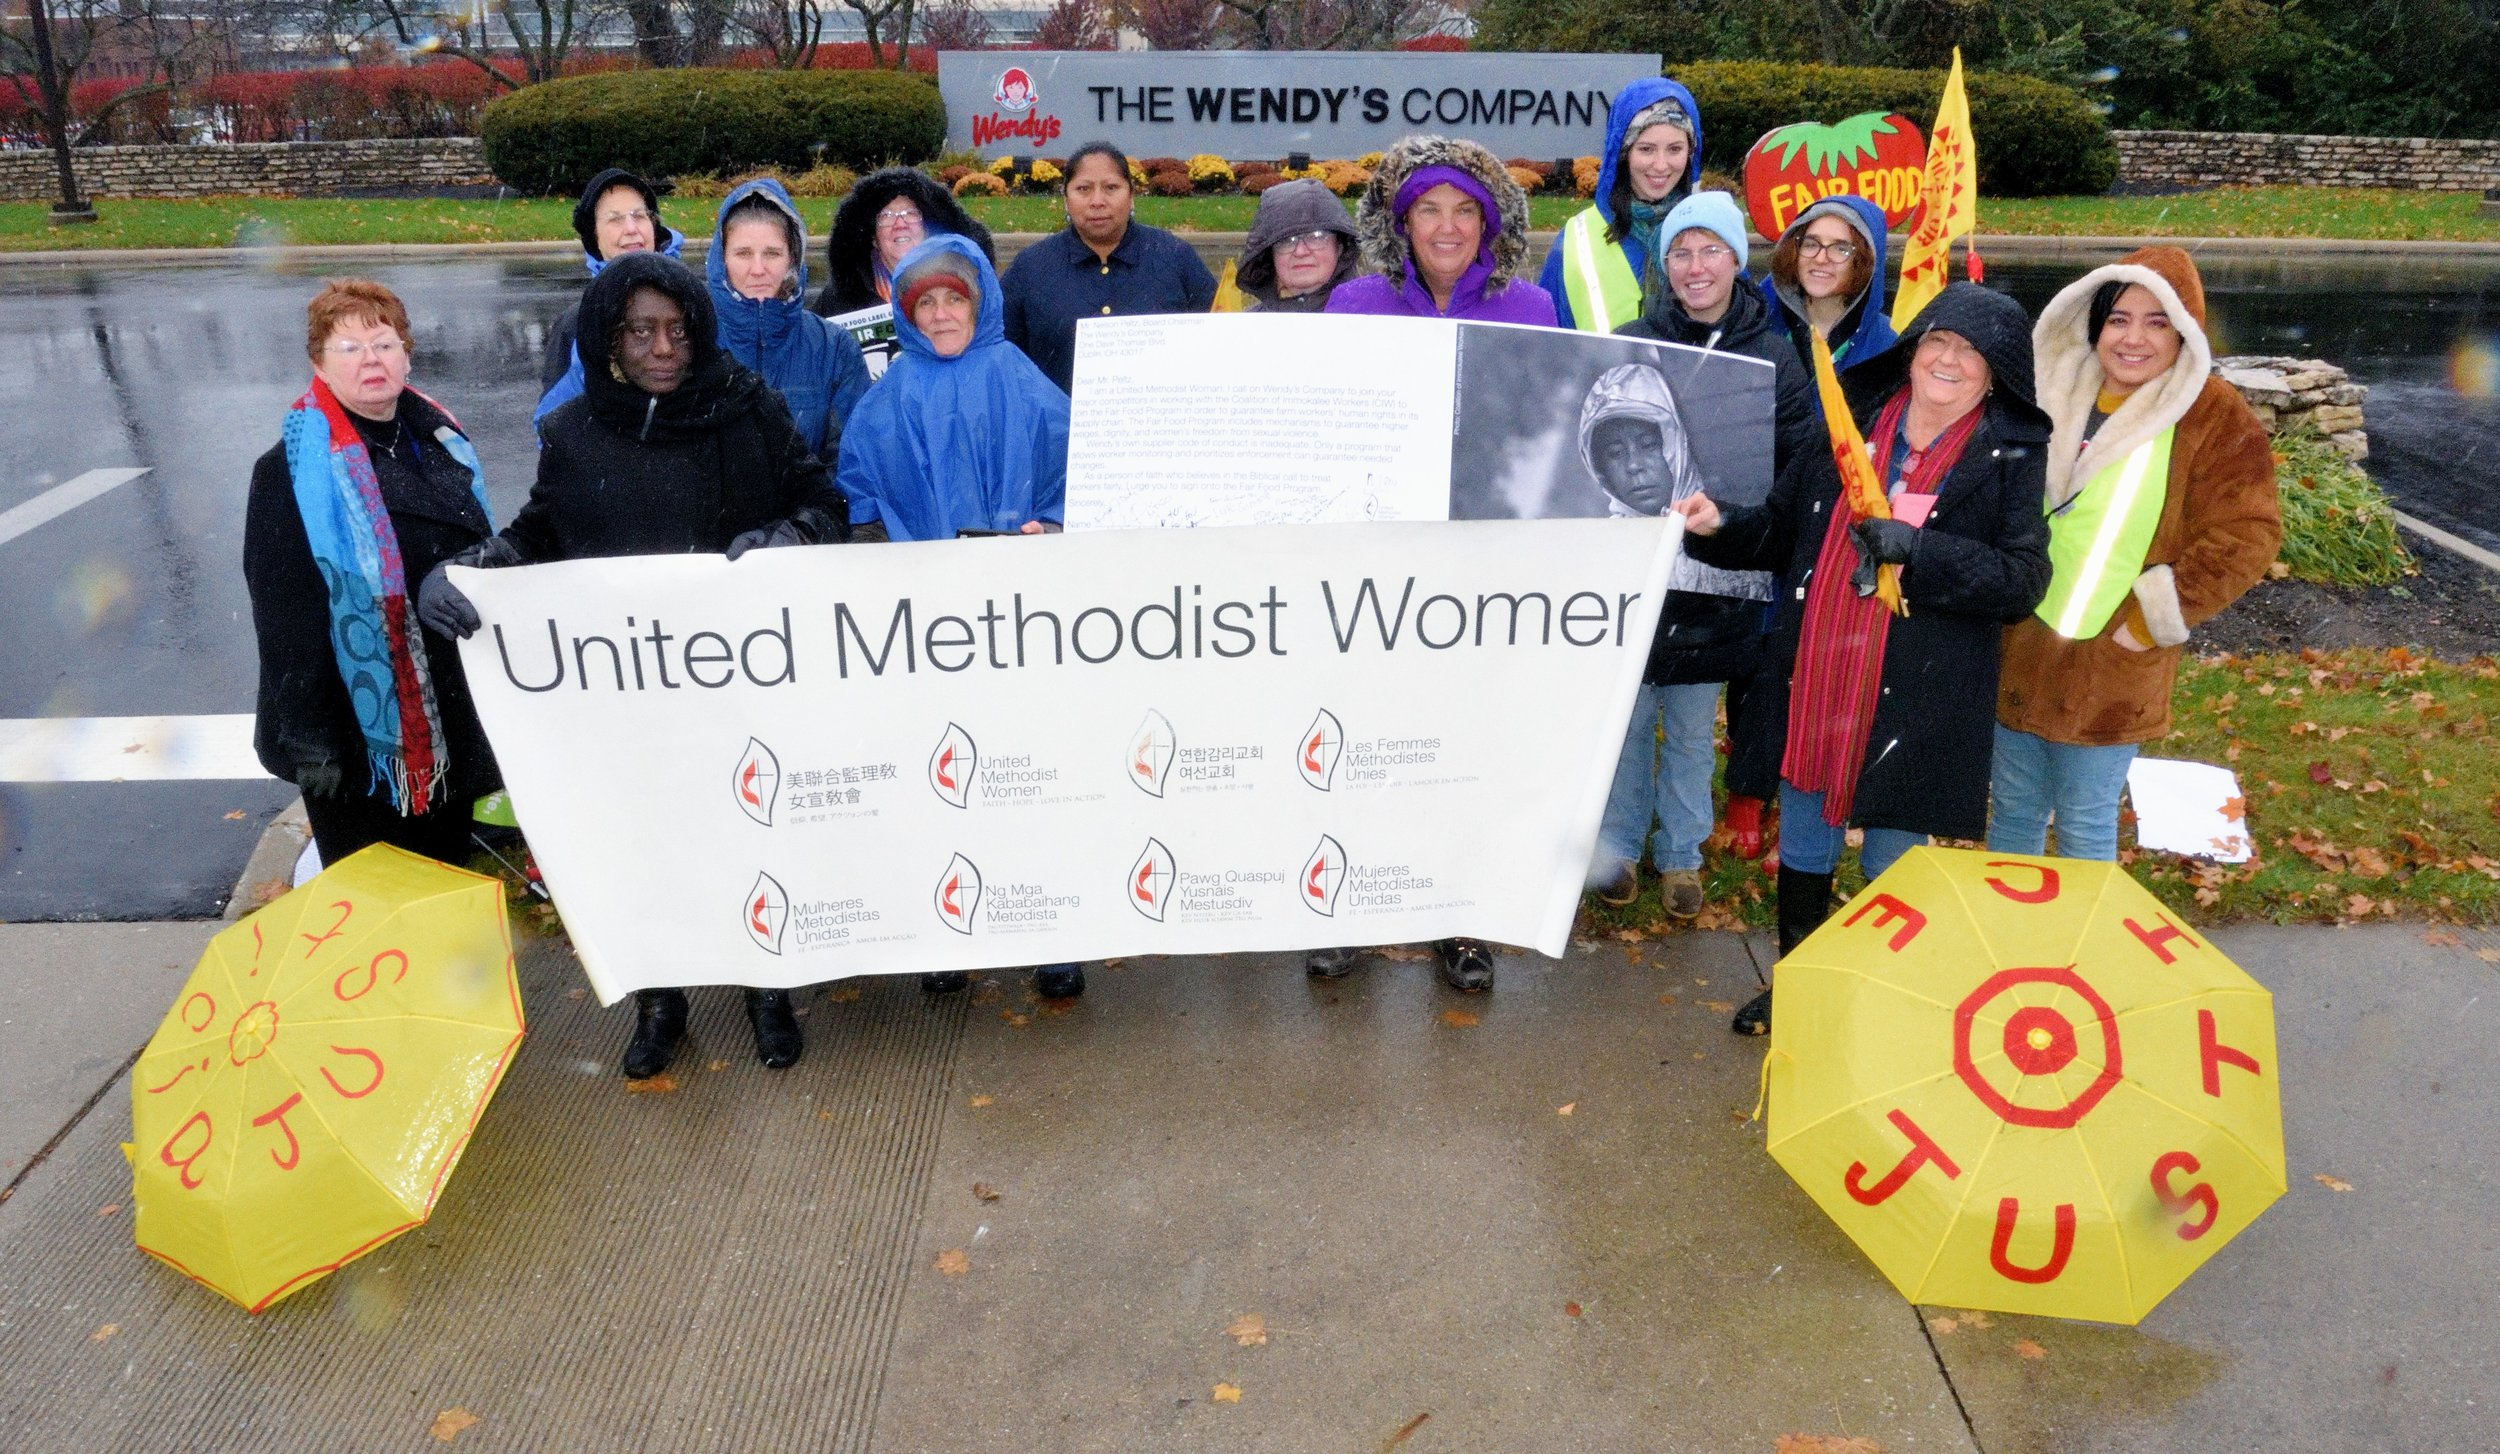 The delegation of United Methodist Women, local Columbus area faith leaders and students outside of the Wendy's HQ.